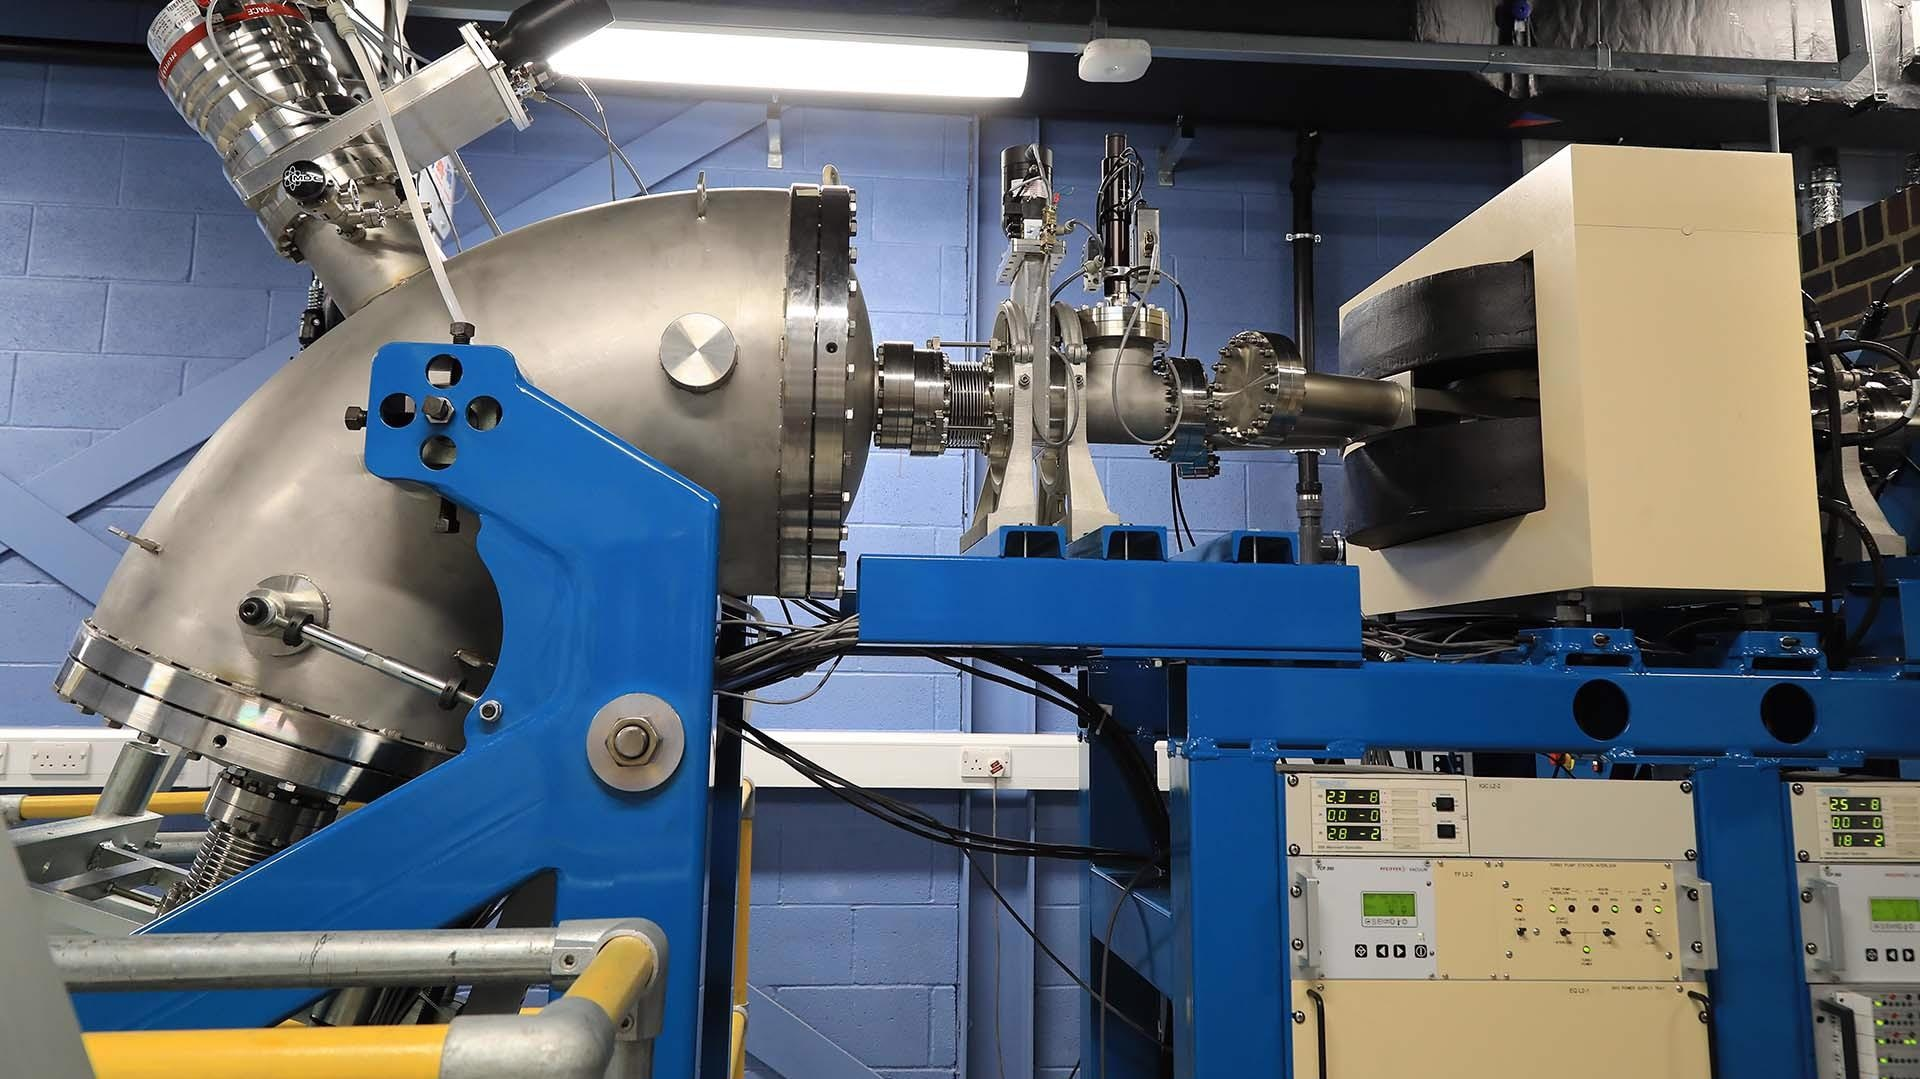 Researchers Investigate New Aluminum Alloy for Protective Spacecraft